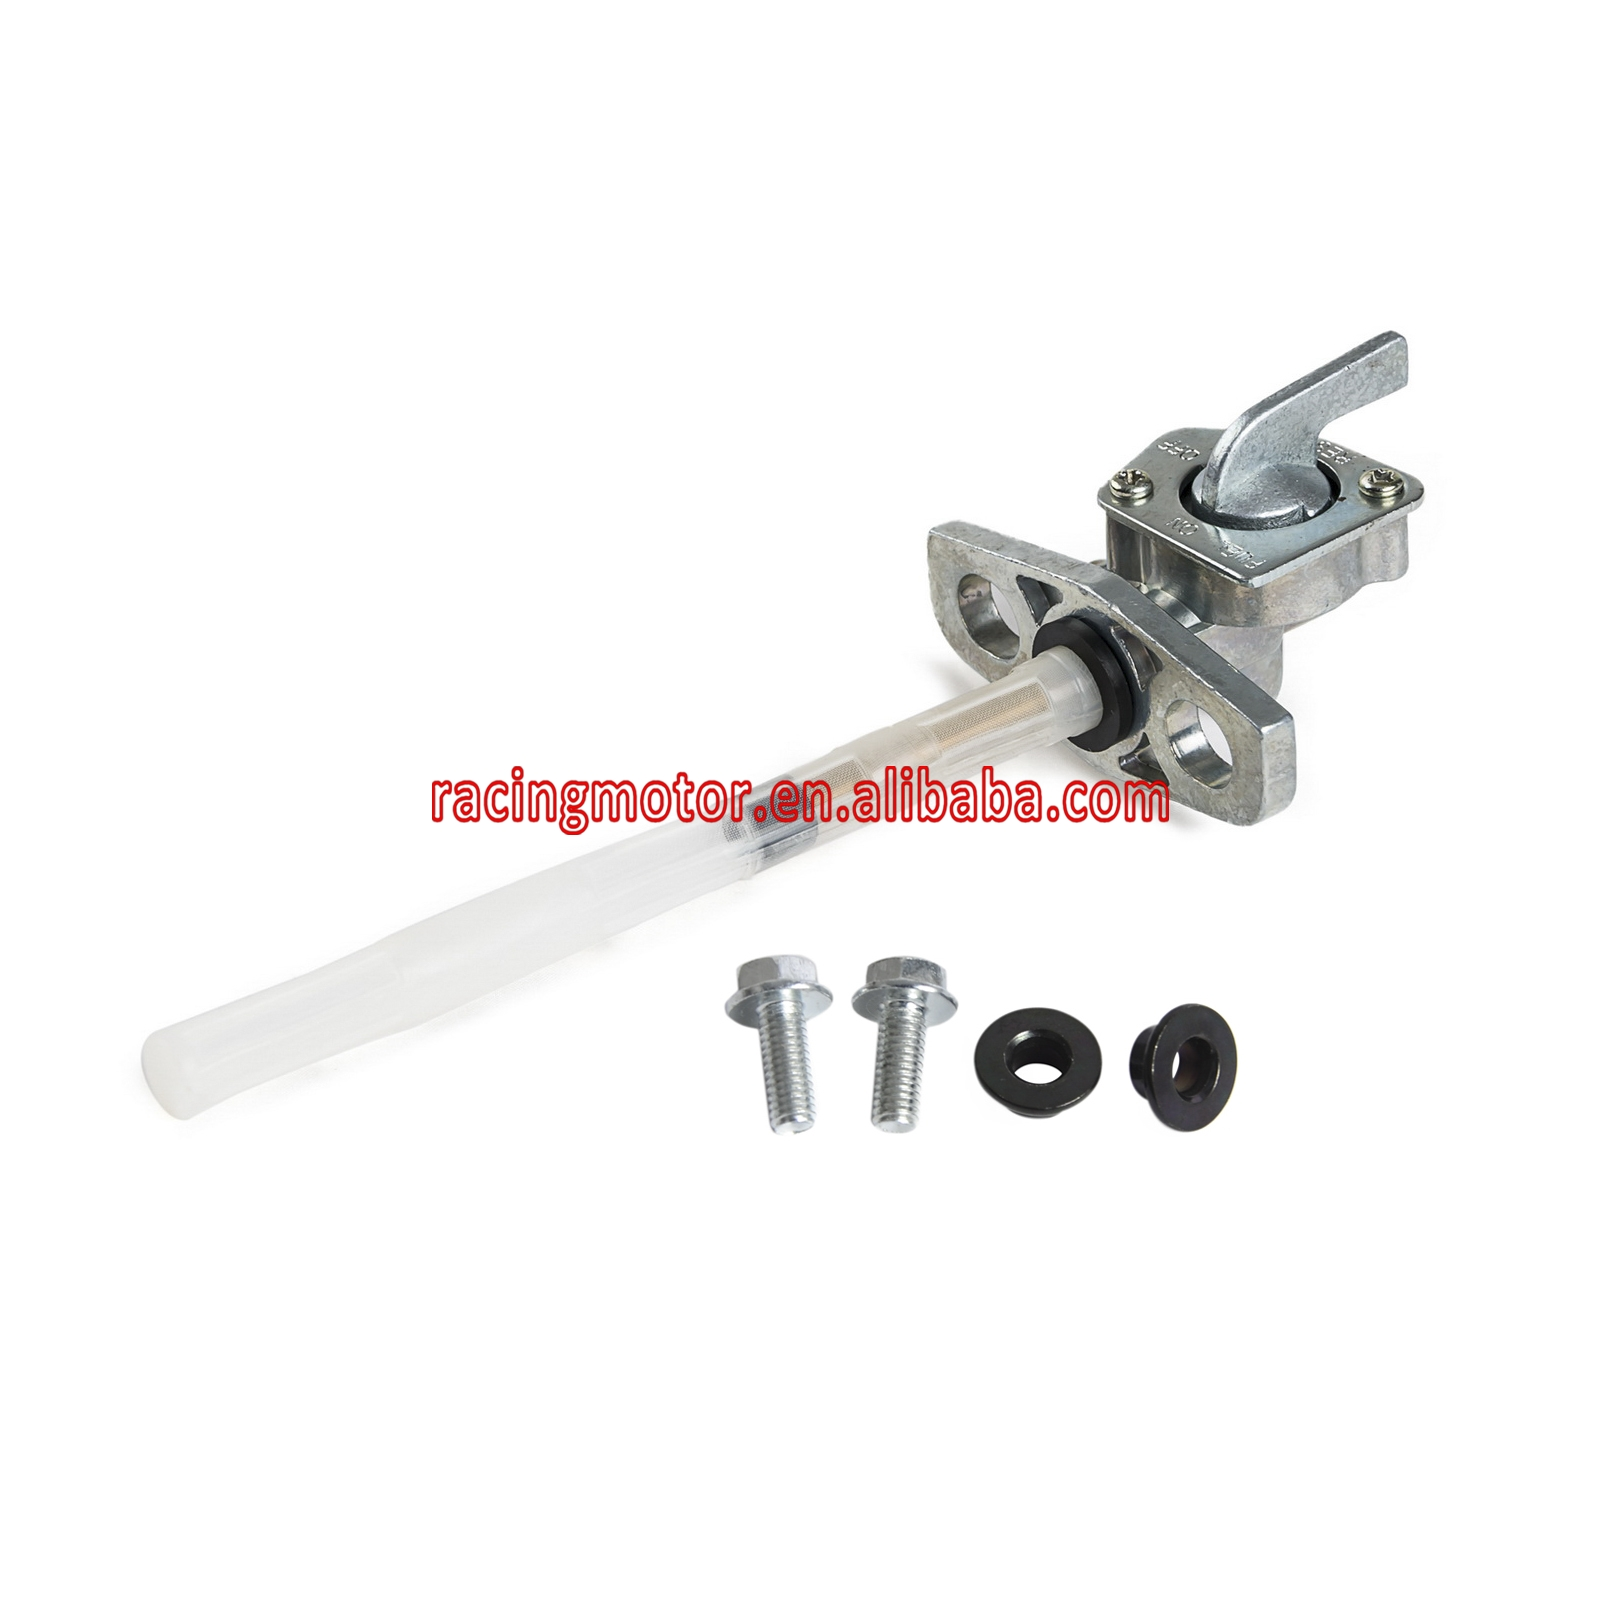 H2CNC Motorcycle Fuel Petcock Valve switch for Honda XR600R 1988-2000 STOCK OEM # 16950-MN1-871 XR 600R